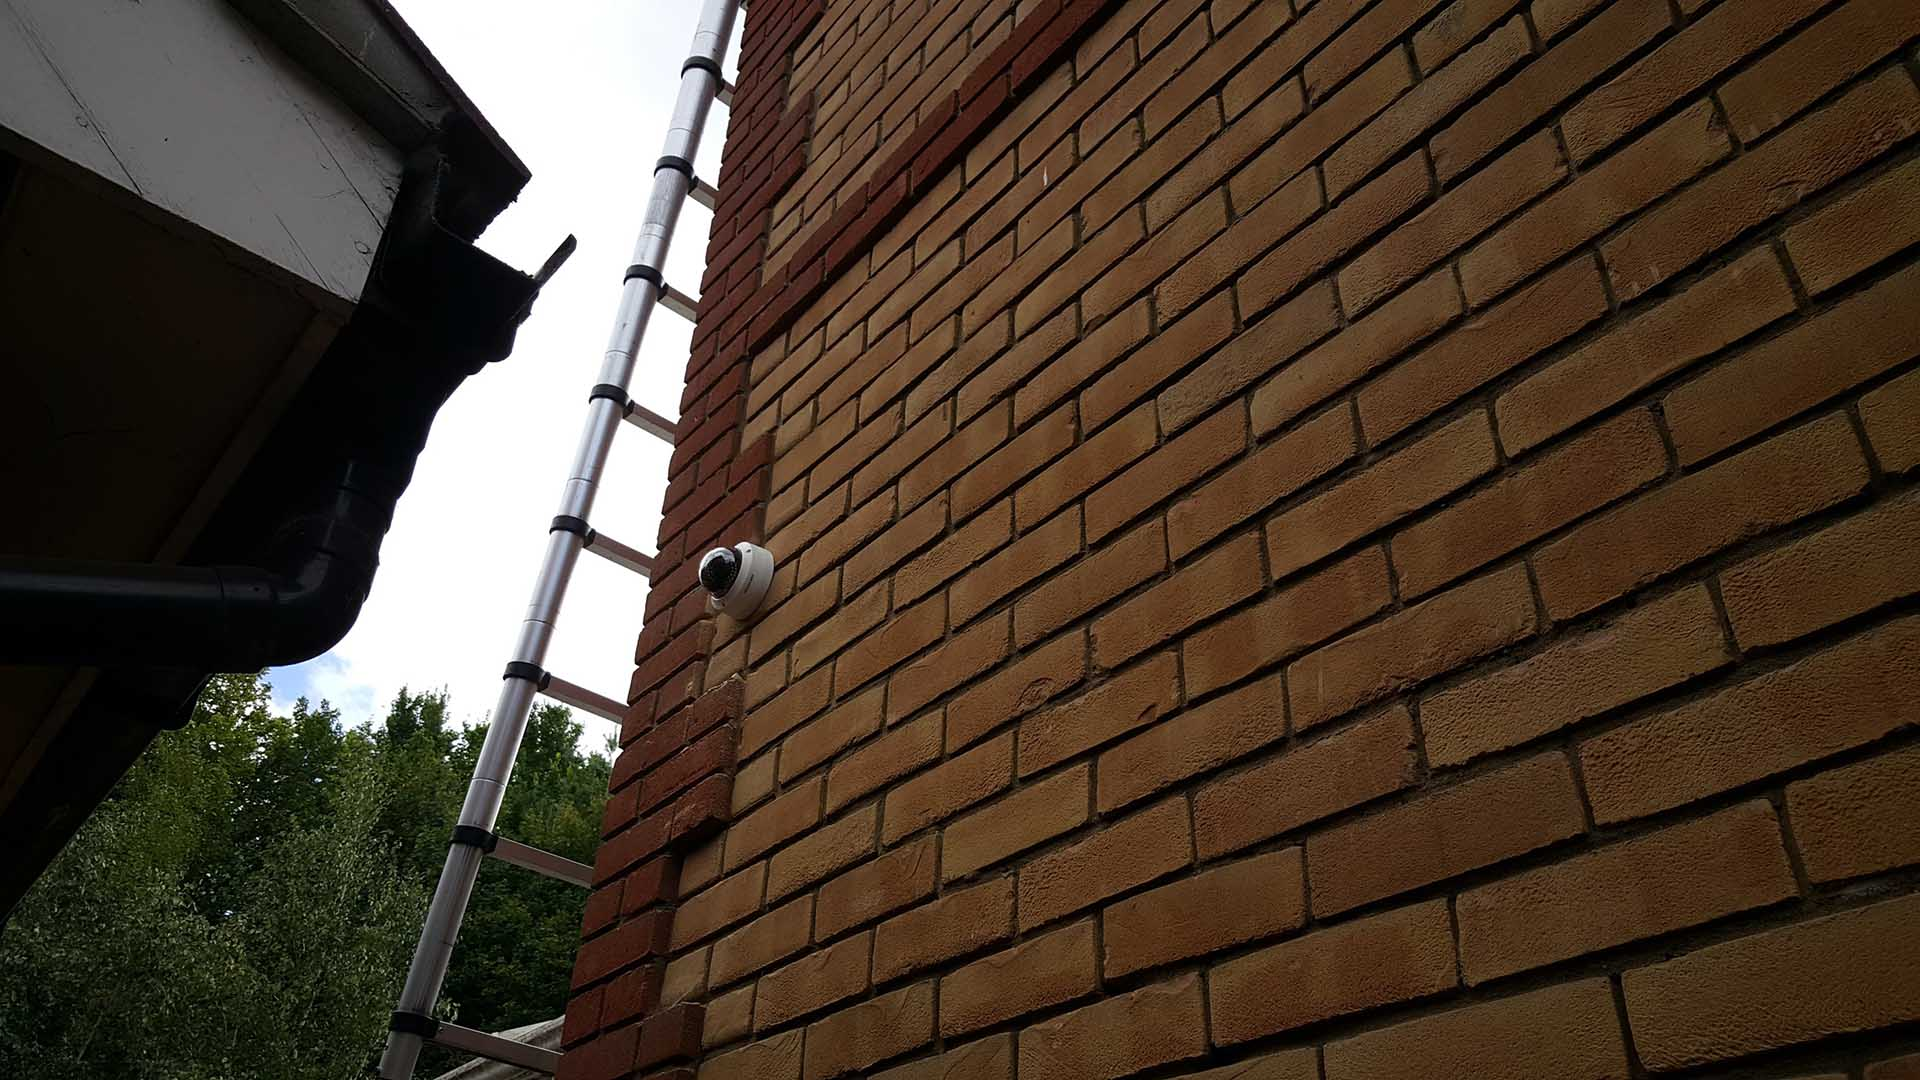 CCTV Installation in Chafford Hundred